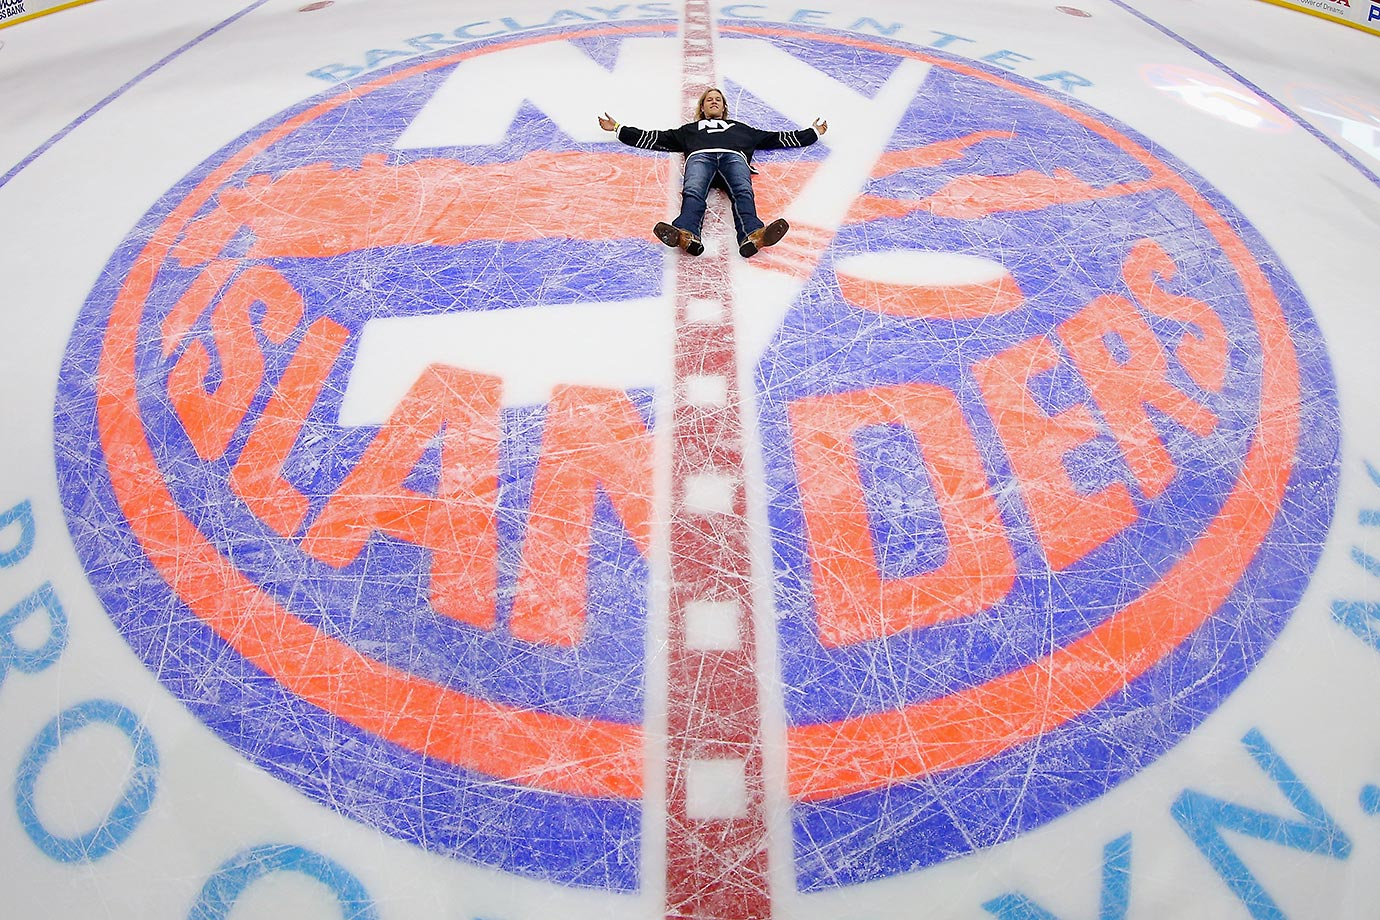 Noah Syndergaard of the New York Mets shows us what he's up to this off-season.